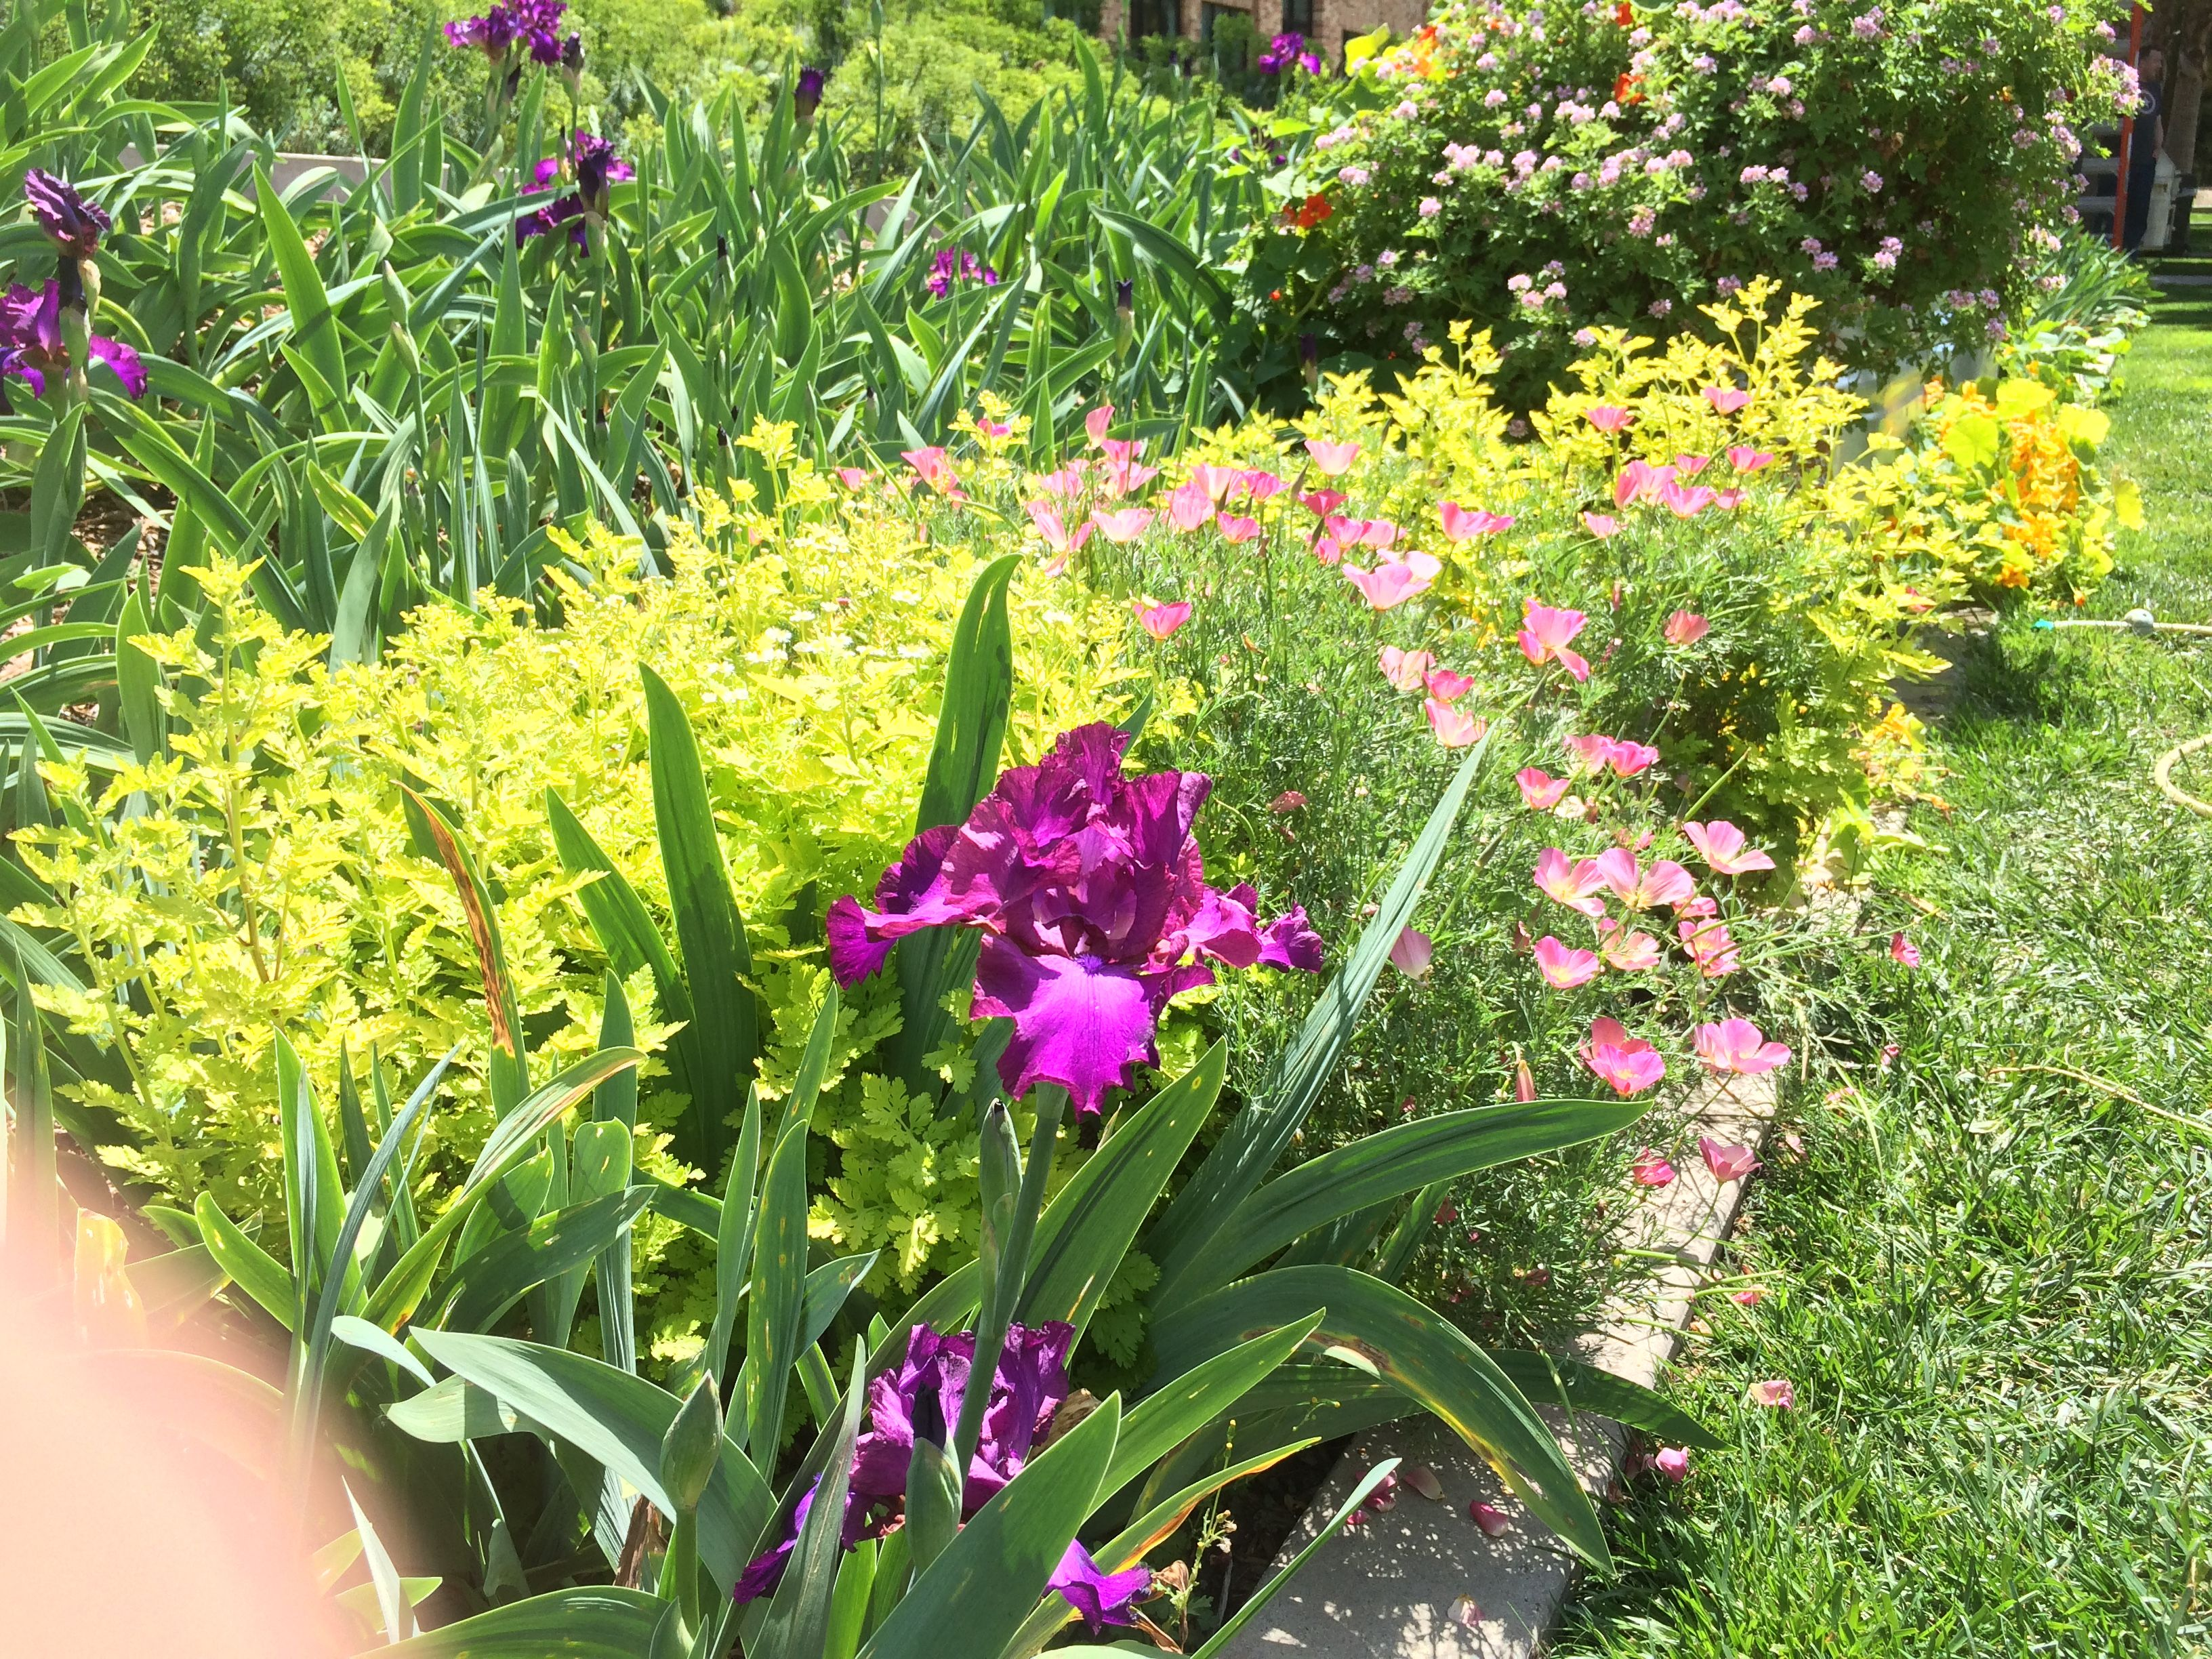 Spring flower show: Bearded iris, pink Ca poppy, golden feverfew ...